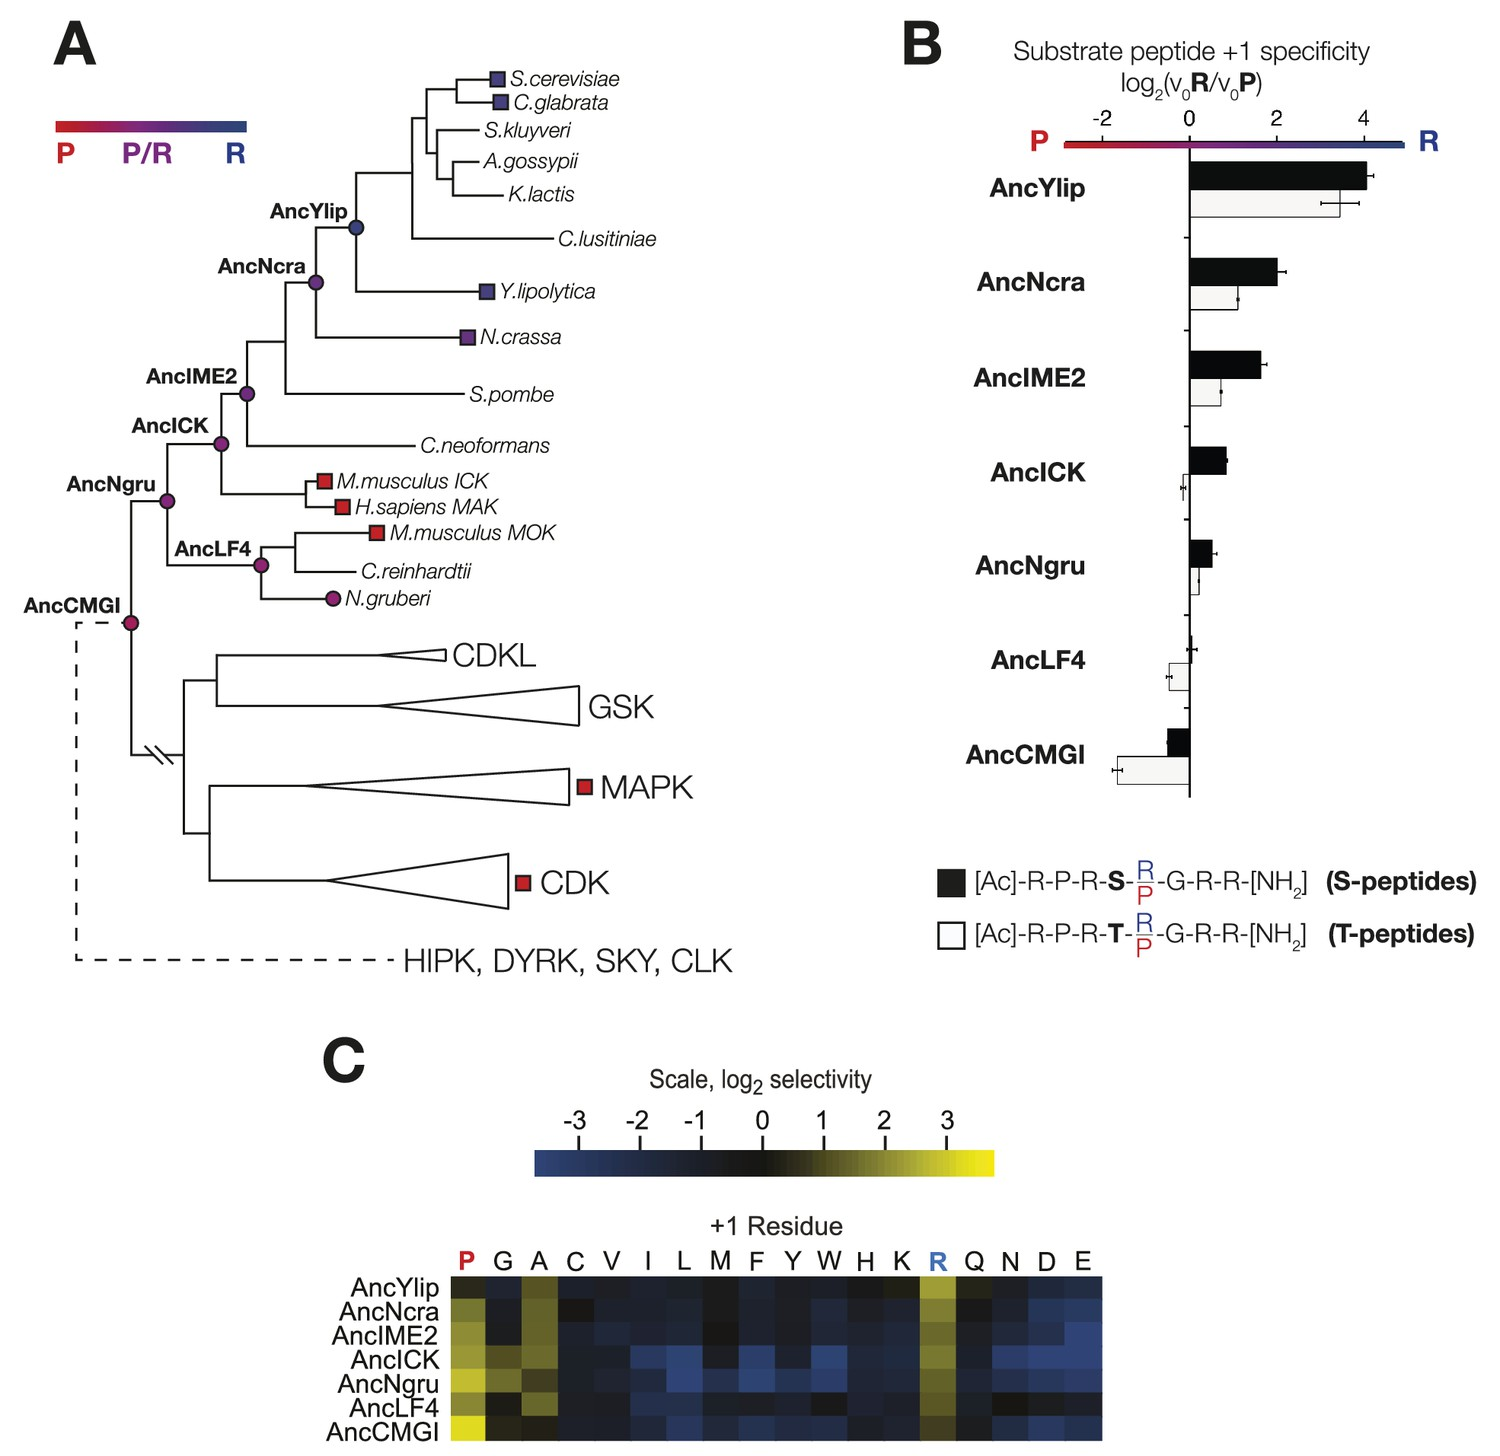 The substrate peptide +1 specificity evolved from proline in AncCMGI to  arginine in S. cerevisiae Ime2 via an expanded specificity intermediate.